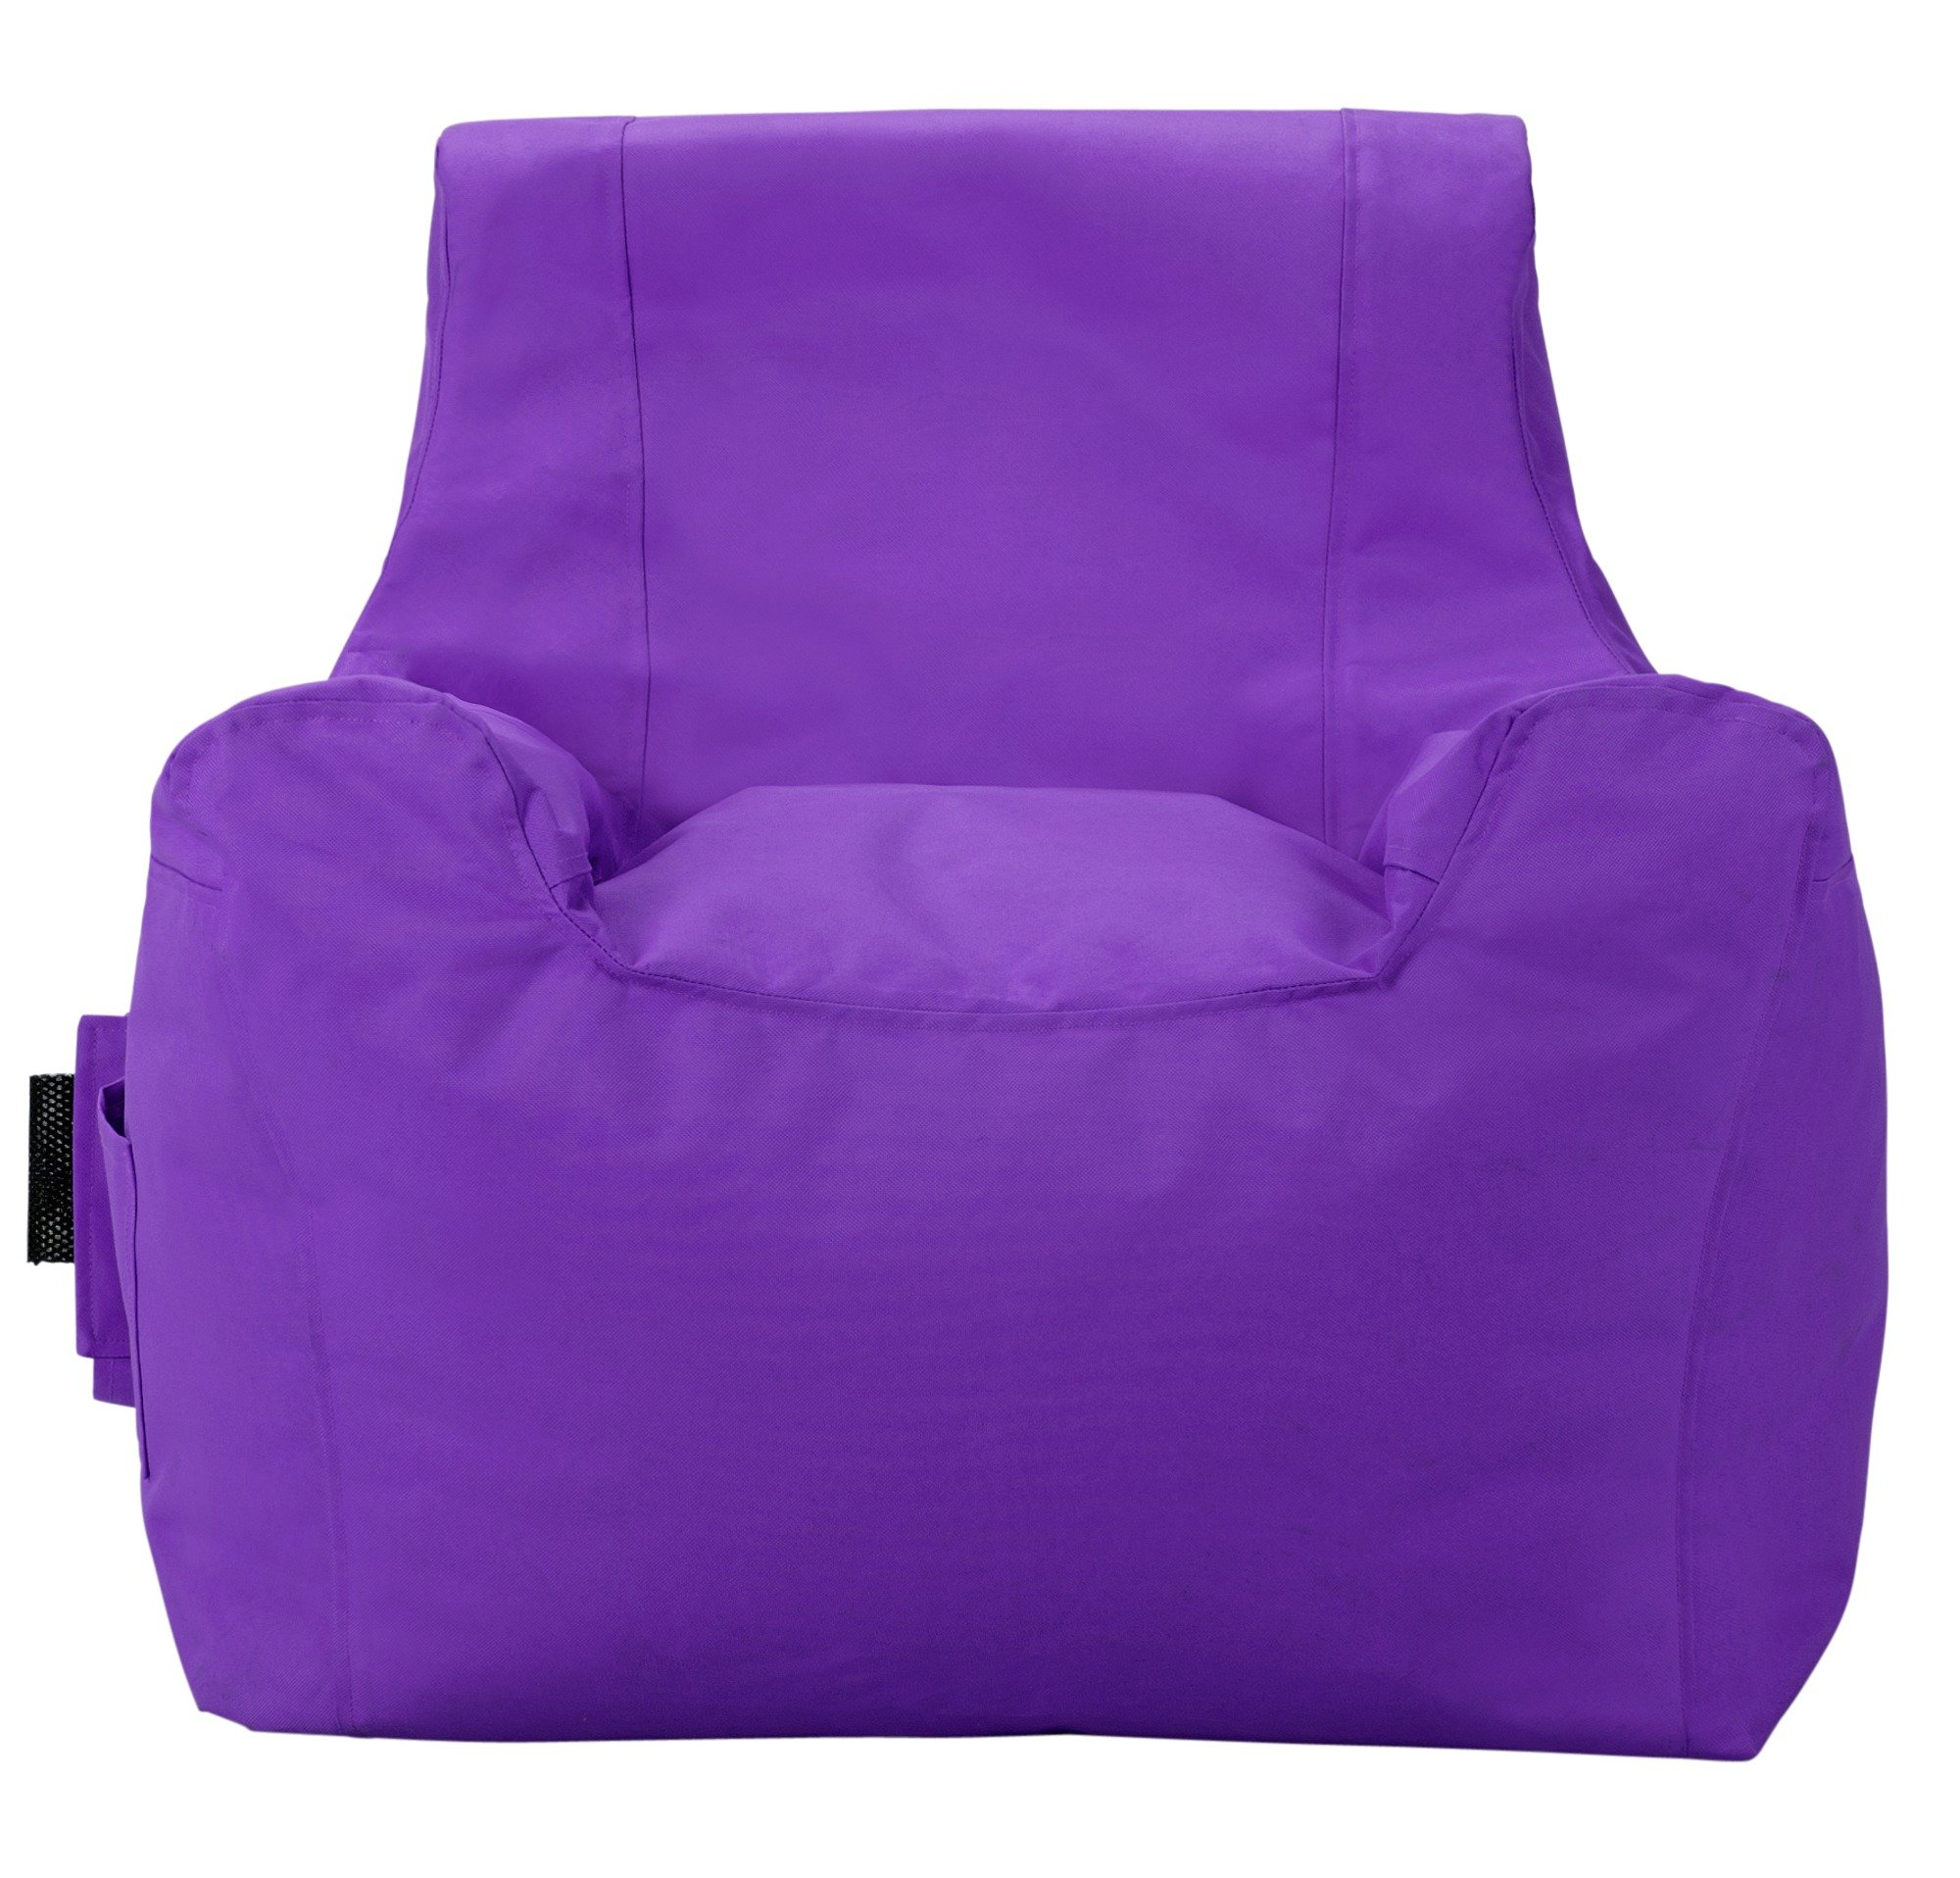 ColourMatch by Argos Large Teenager Beanbag - Purple